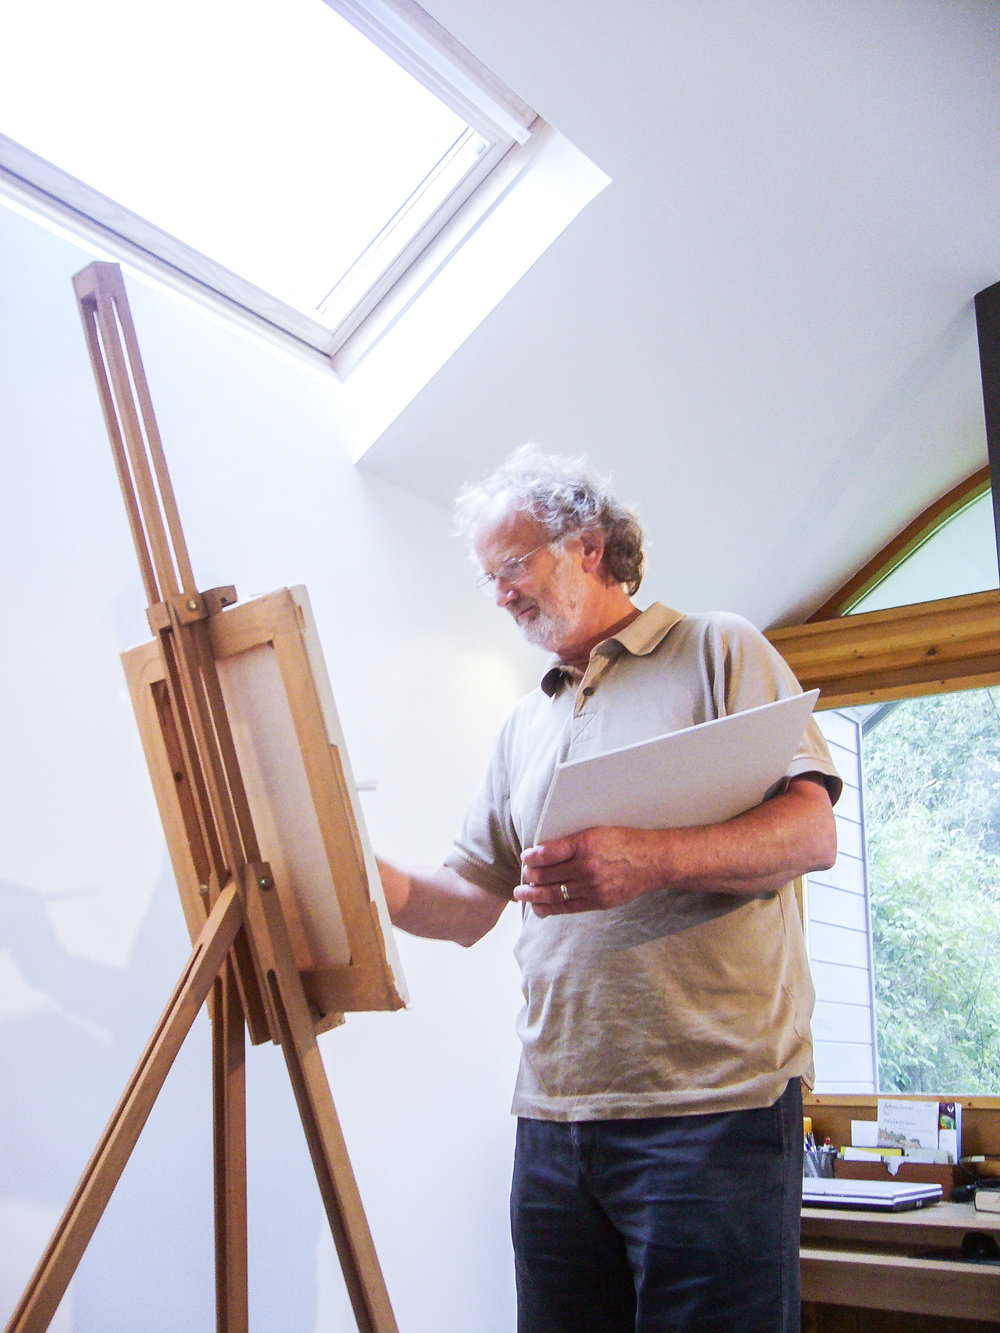 Our client was delighted with the thermal comfort and the quality of natural light in his new studio